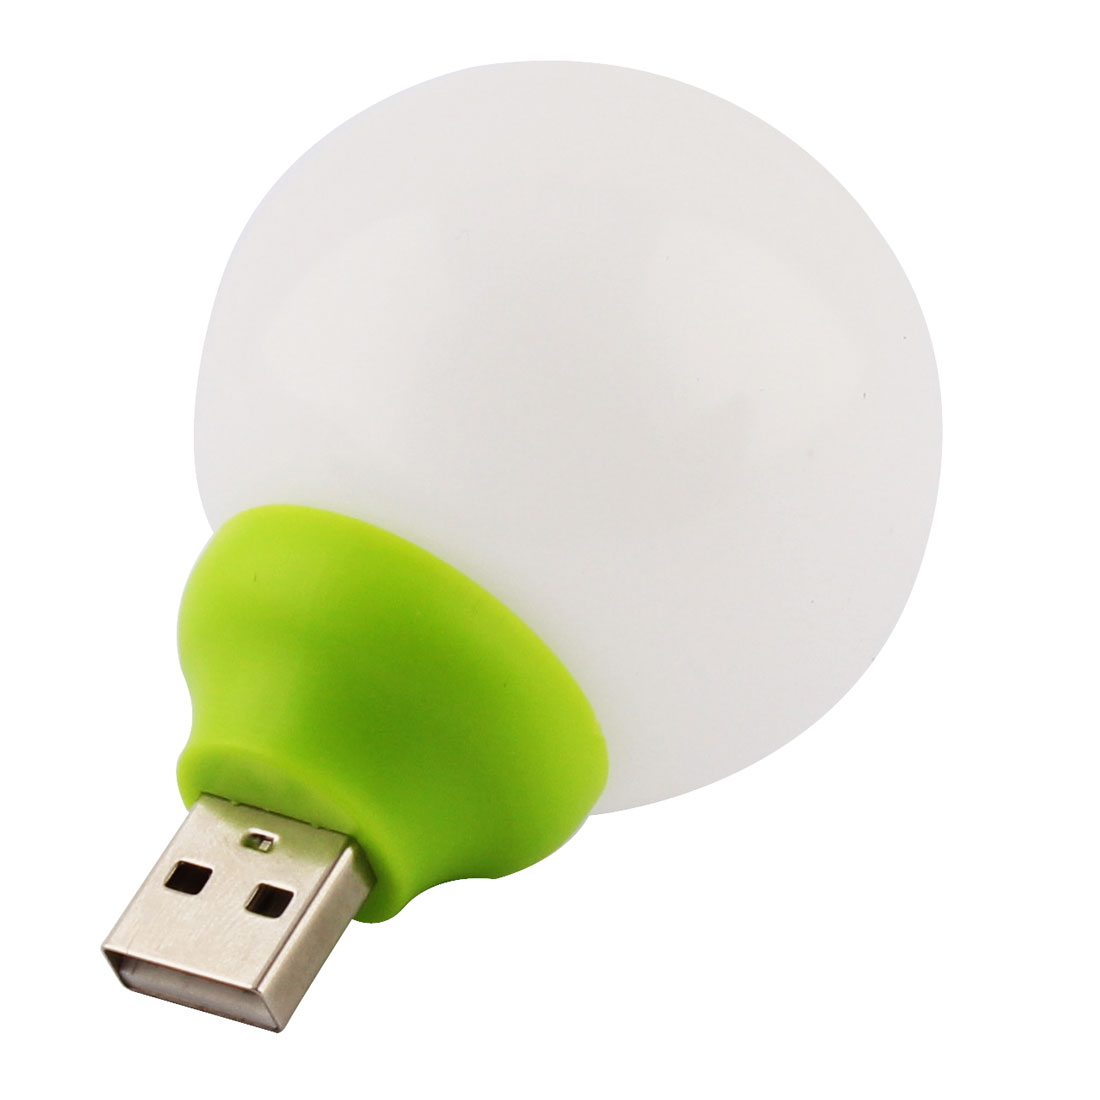 Plastic USB Power Nightlight Desk Ball Lamp Camping Night Light LED Bulb Green